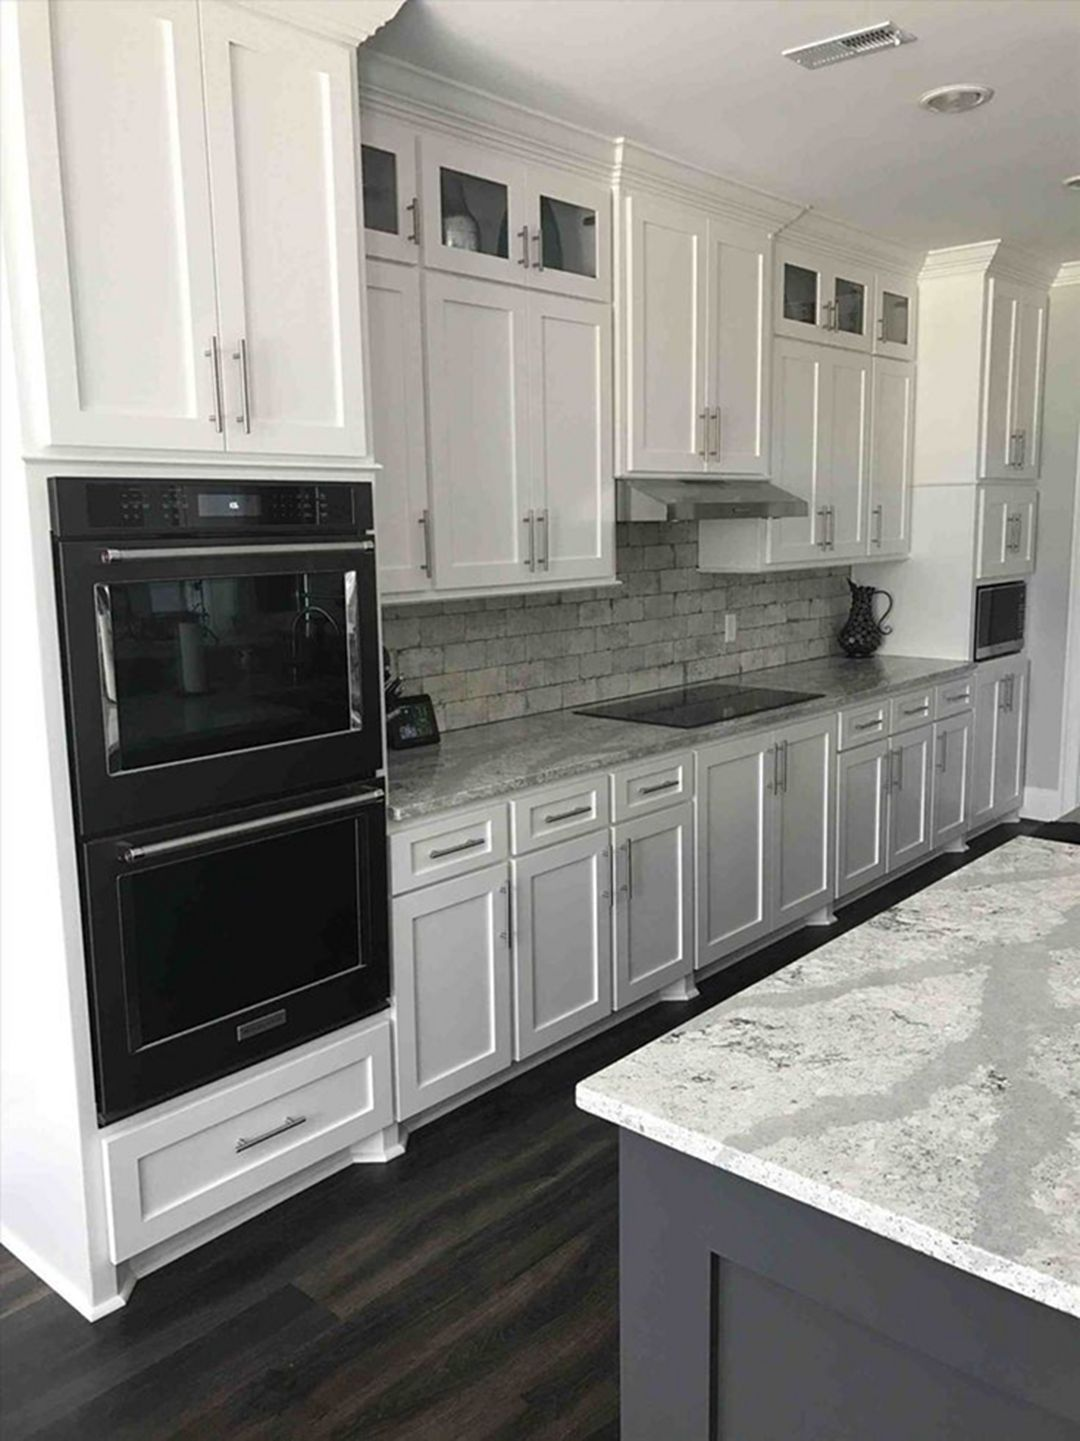 30 Elegant Black And White Kitchen Cabinet And Appliance Ideas Dexorate White Modern Kitchen White Kitchen Design New Kitchen Cabinets Kitchen design with stainless steel appliances